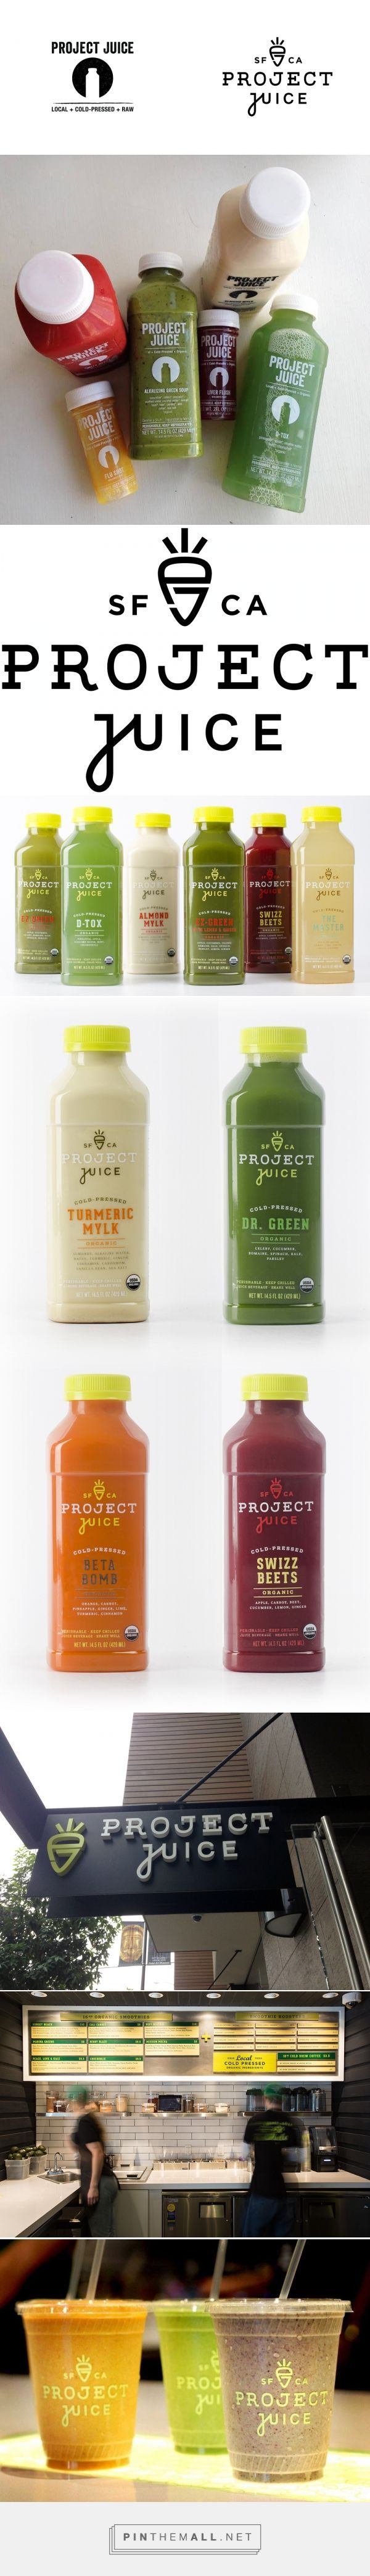 New Logo and Packaging for Project Juice by Chen Design Associates curated by Packaging Diva PD. Tasty looking shop and packaging.: